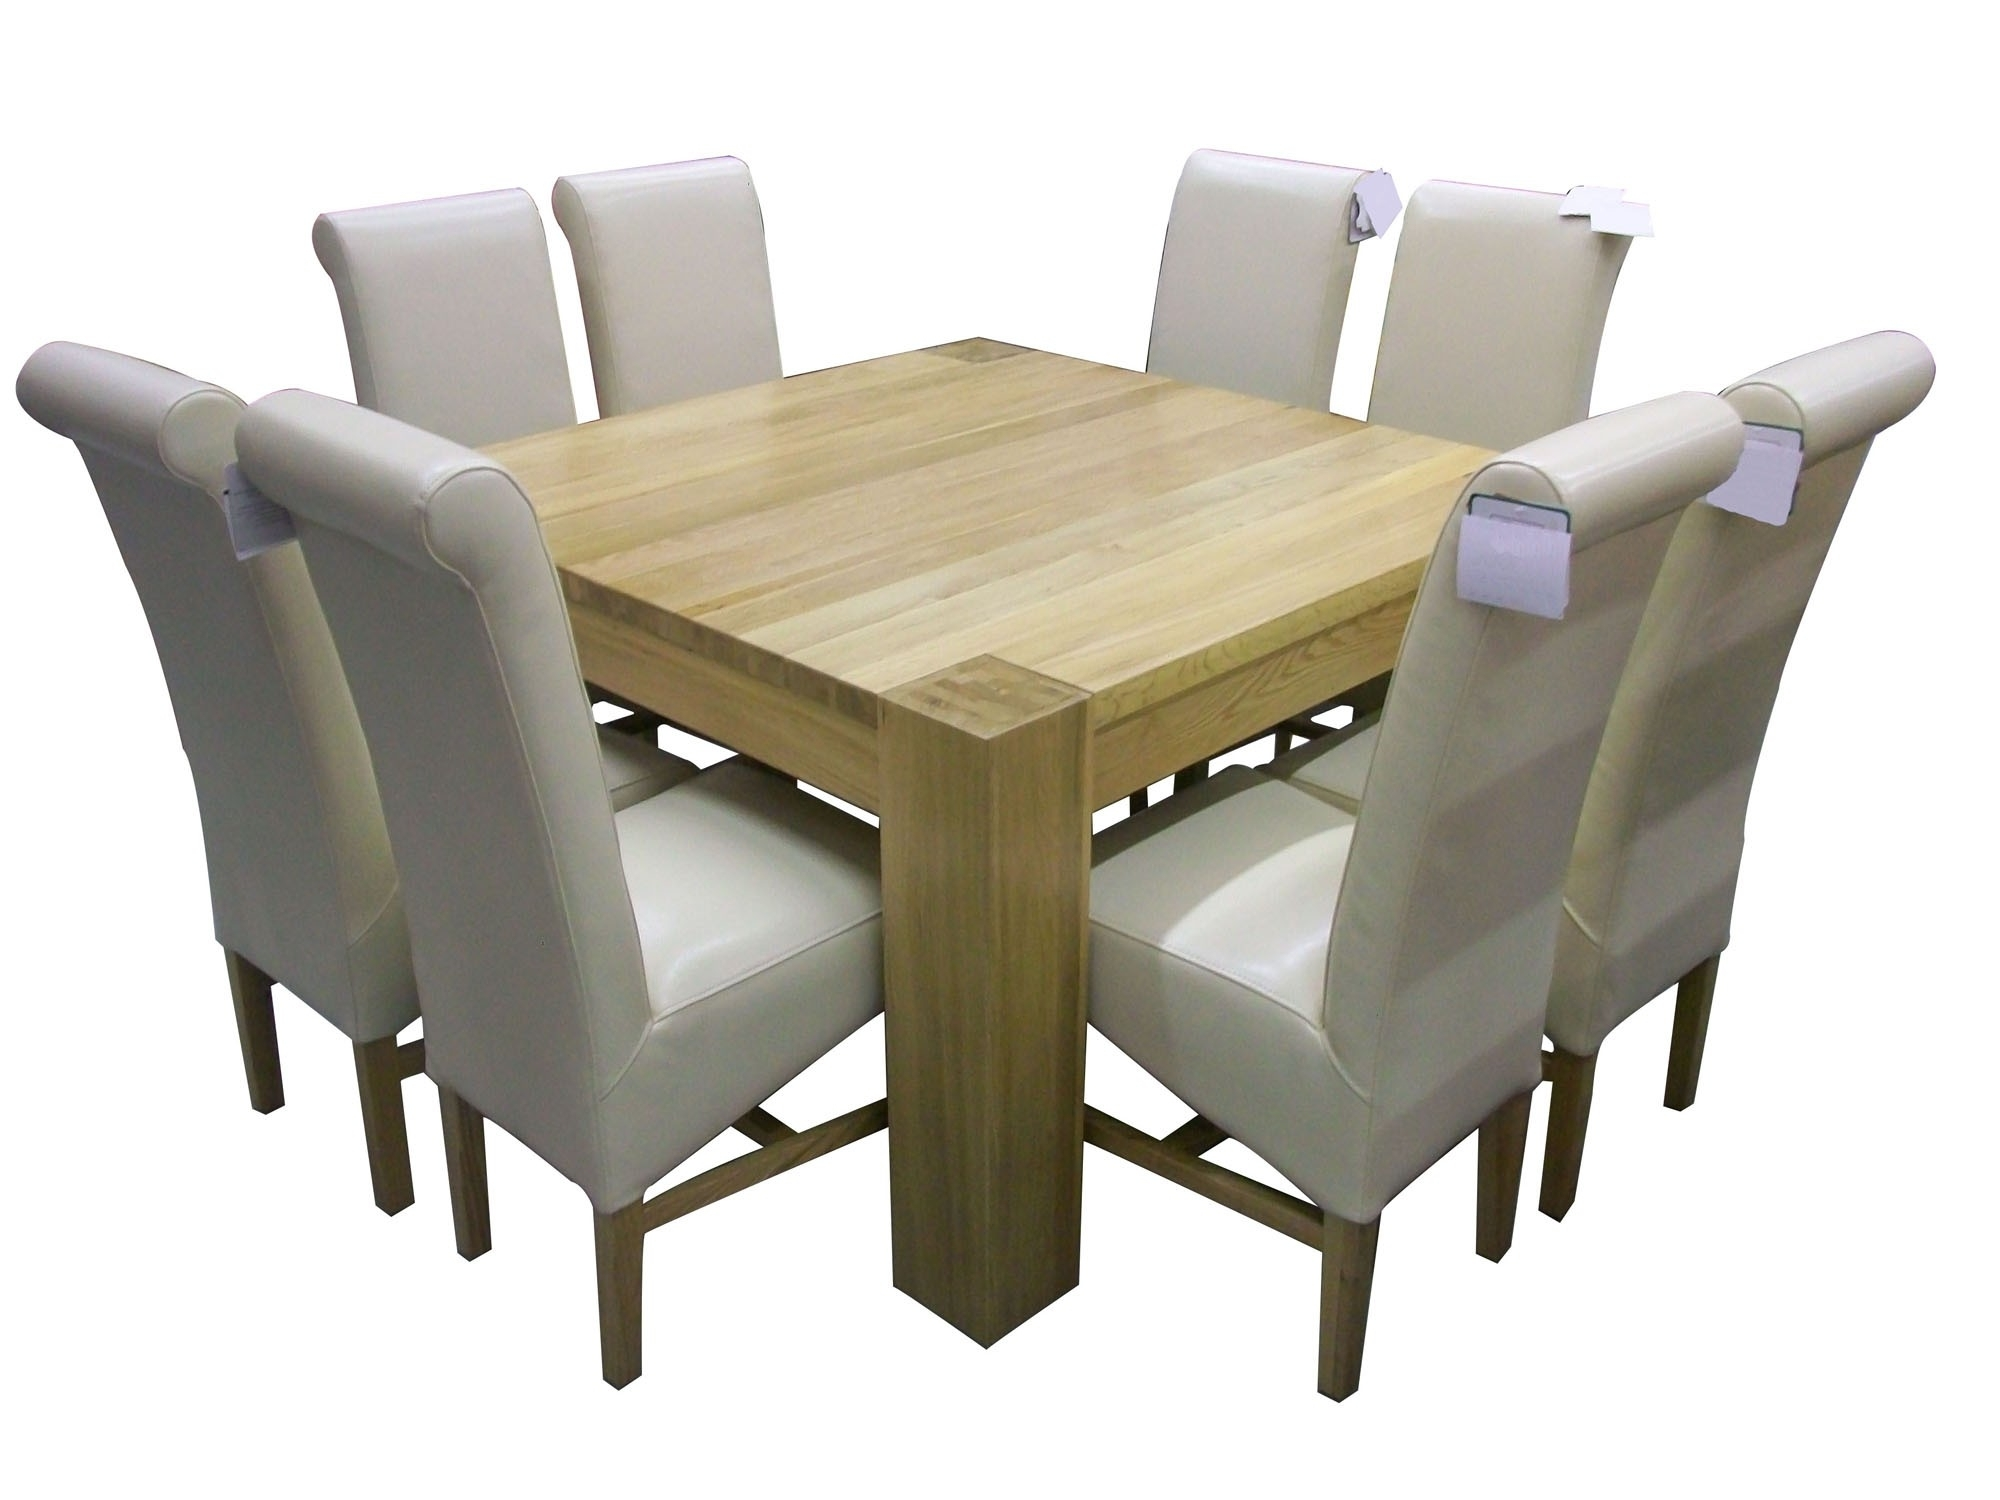 Oak Dining Tables And 8 Chairs With Regard To Most Recent Solid Oak Dining Room Table And 8 Chairs Inspirational White Square (View 18 of 25)